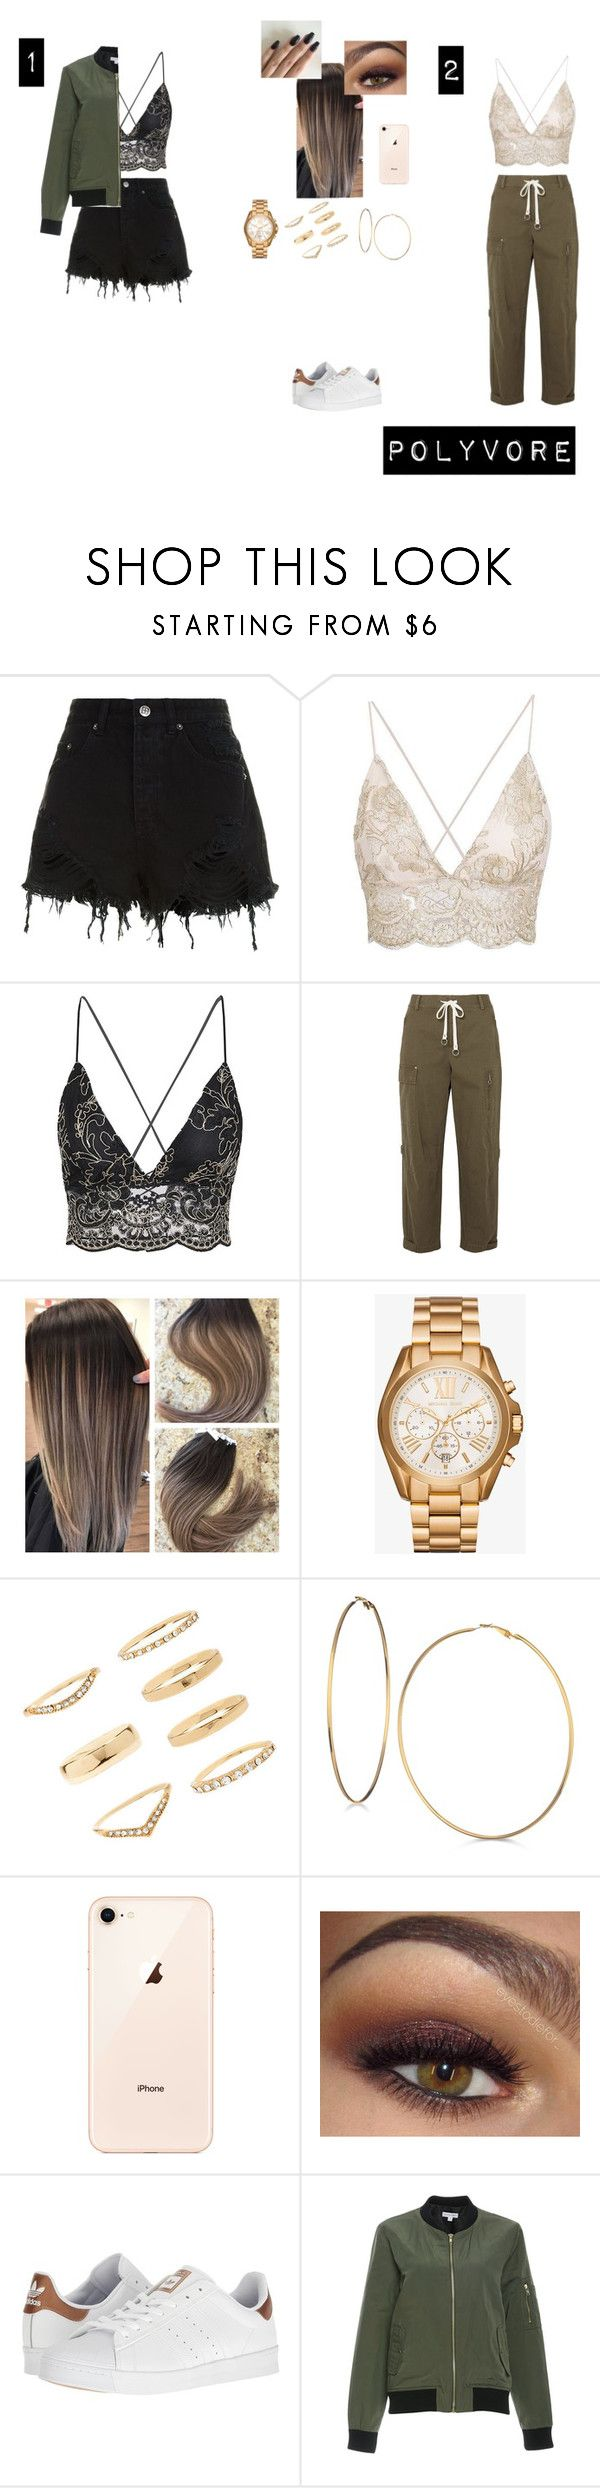 """Sem título #164"" by someoneyouknow000 on Polyvore featuring moda, Ksubi, T By Alexander Wang, Michael Kors, Forever 21, GUESS e adidas"